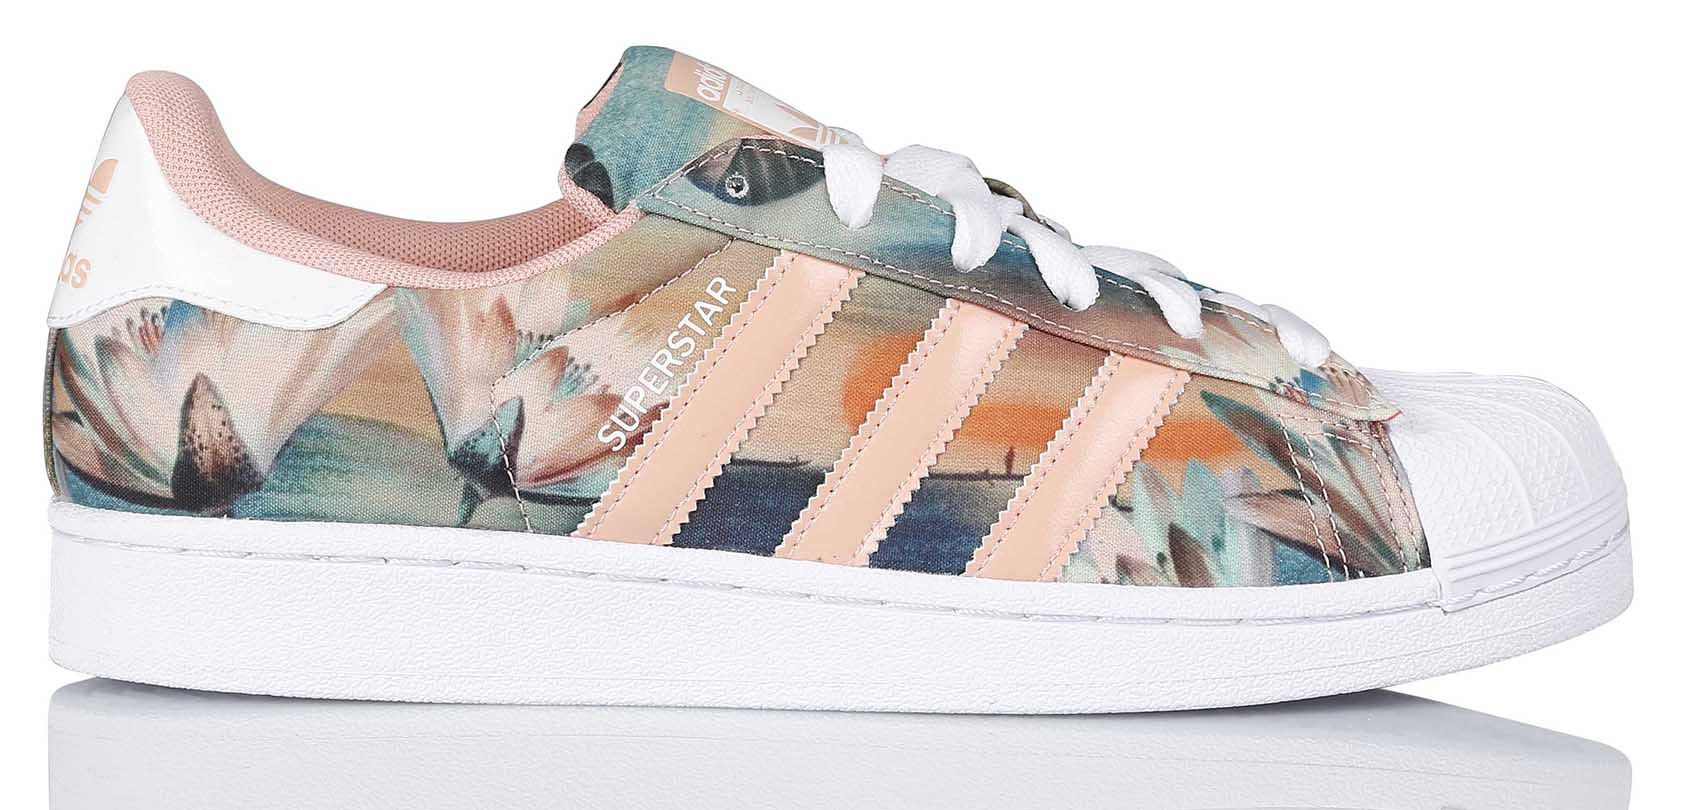 Superstar Bleu Sur Baskets Colorée Adidas By FemmeVersion Pour F1KcTJl